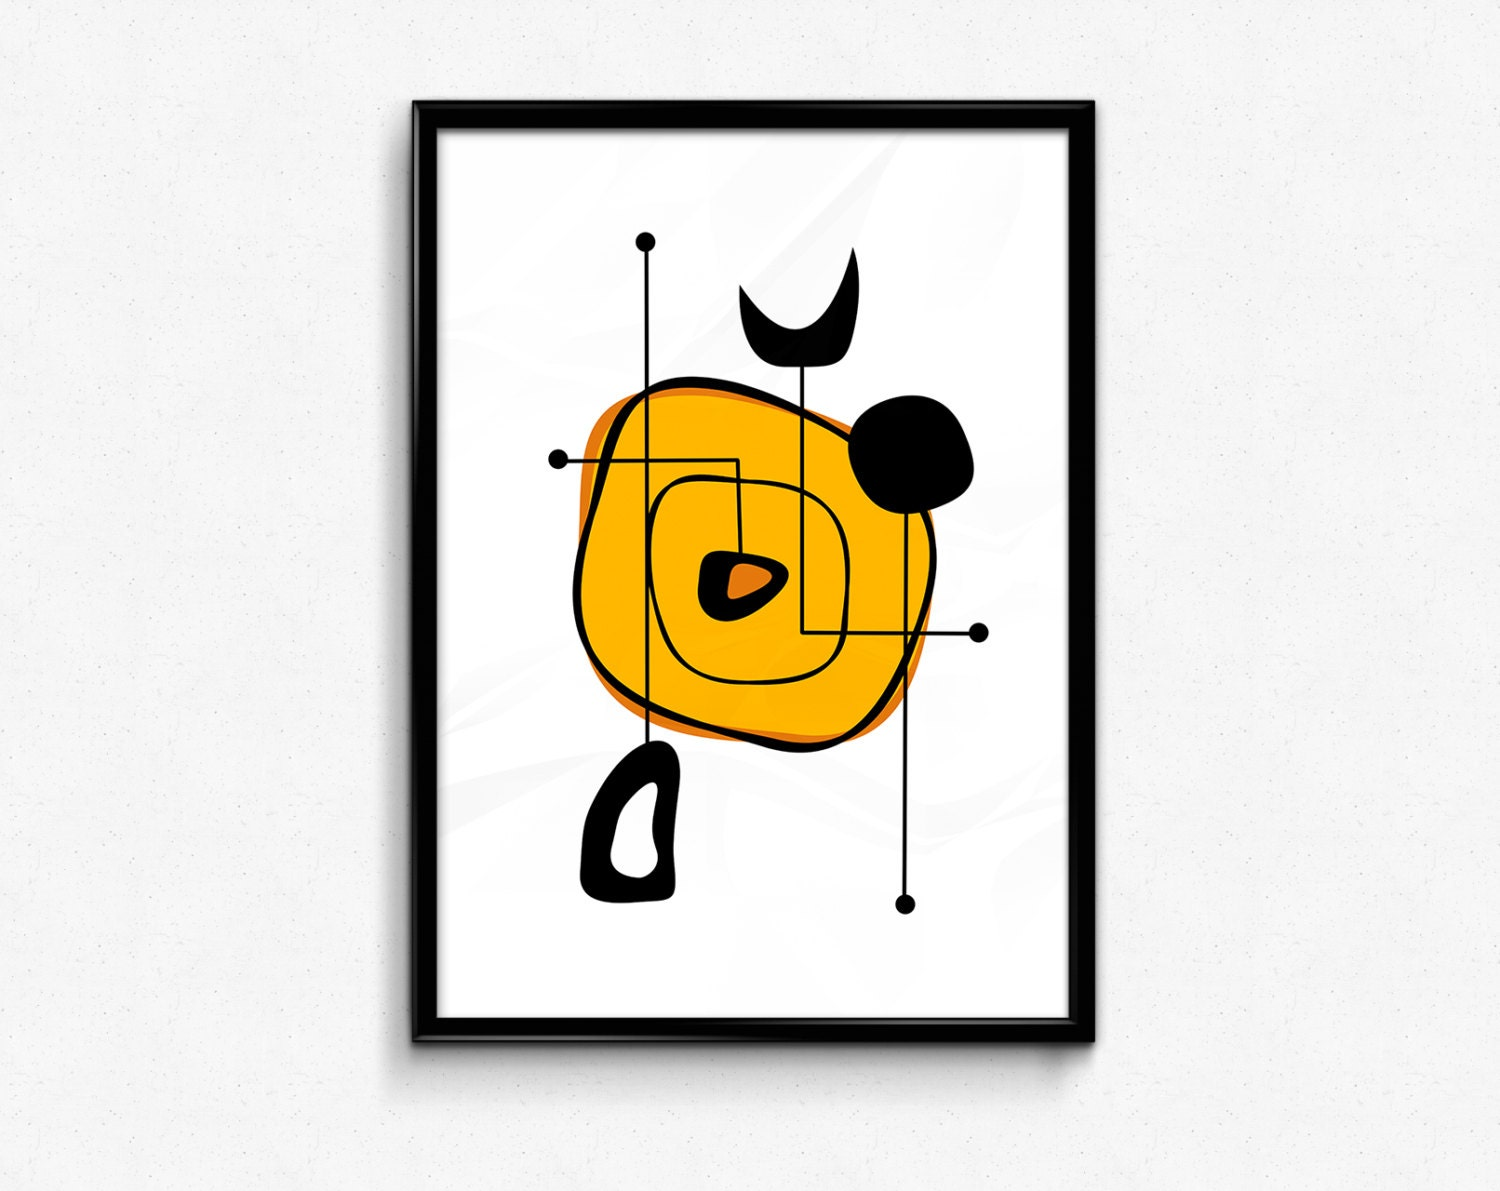 Abstract art mid century modern wall art minimalist poster for Modern minimalist wall art